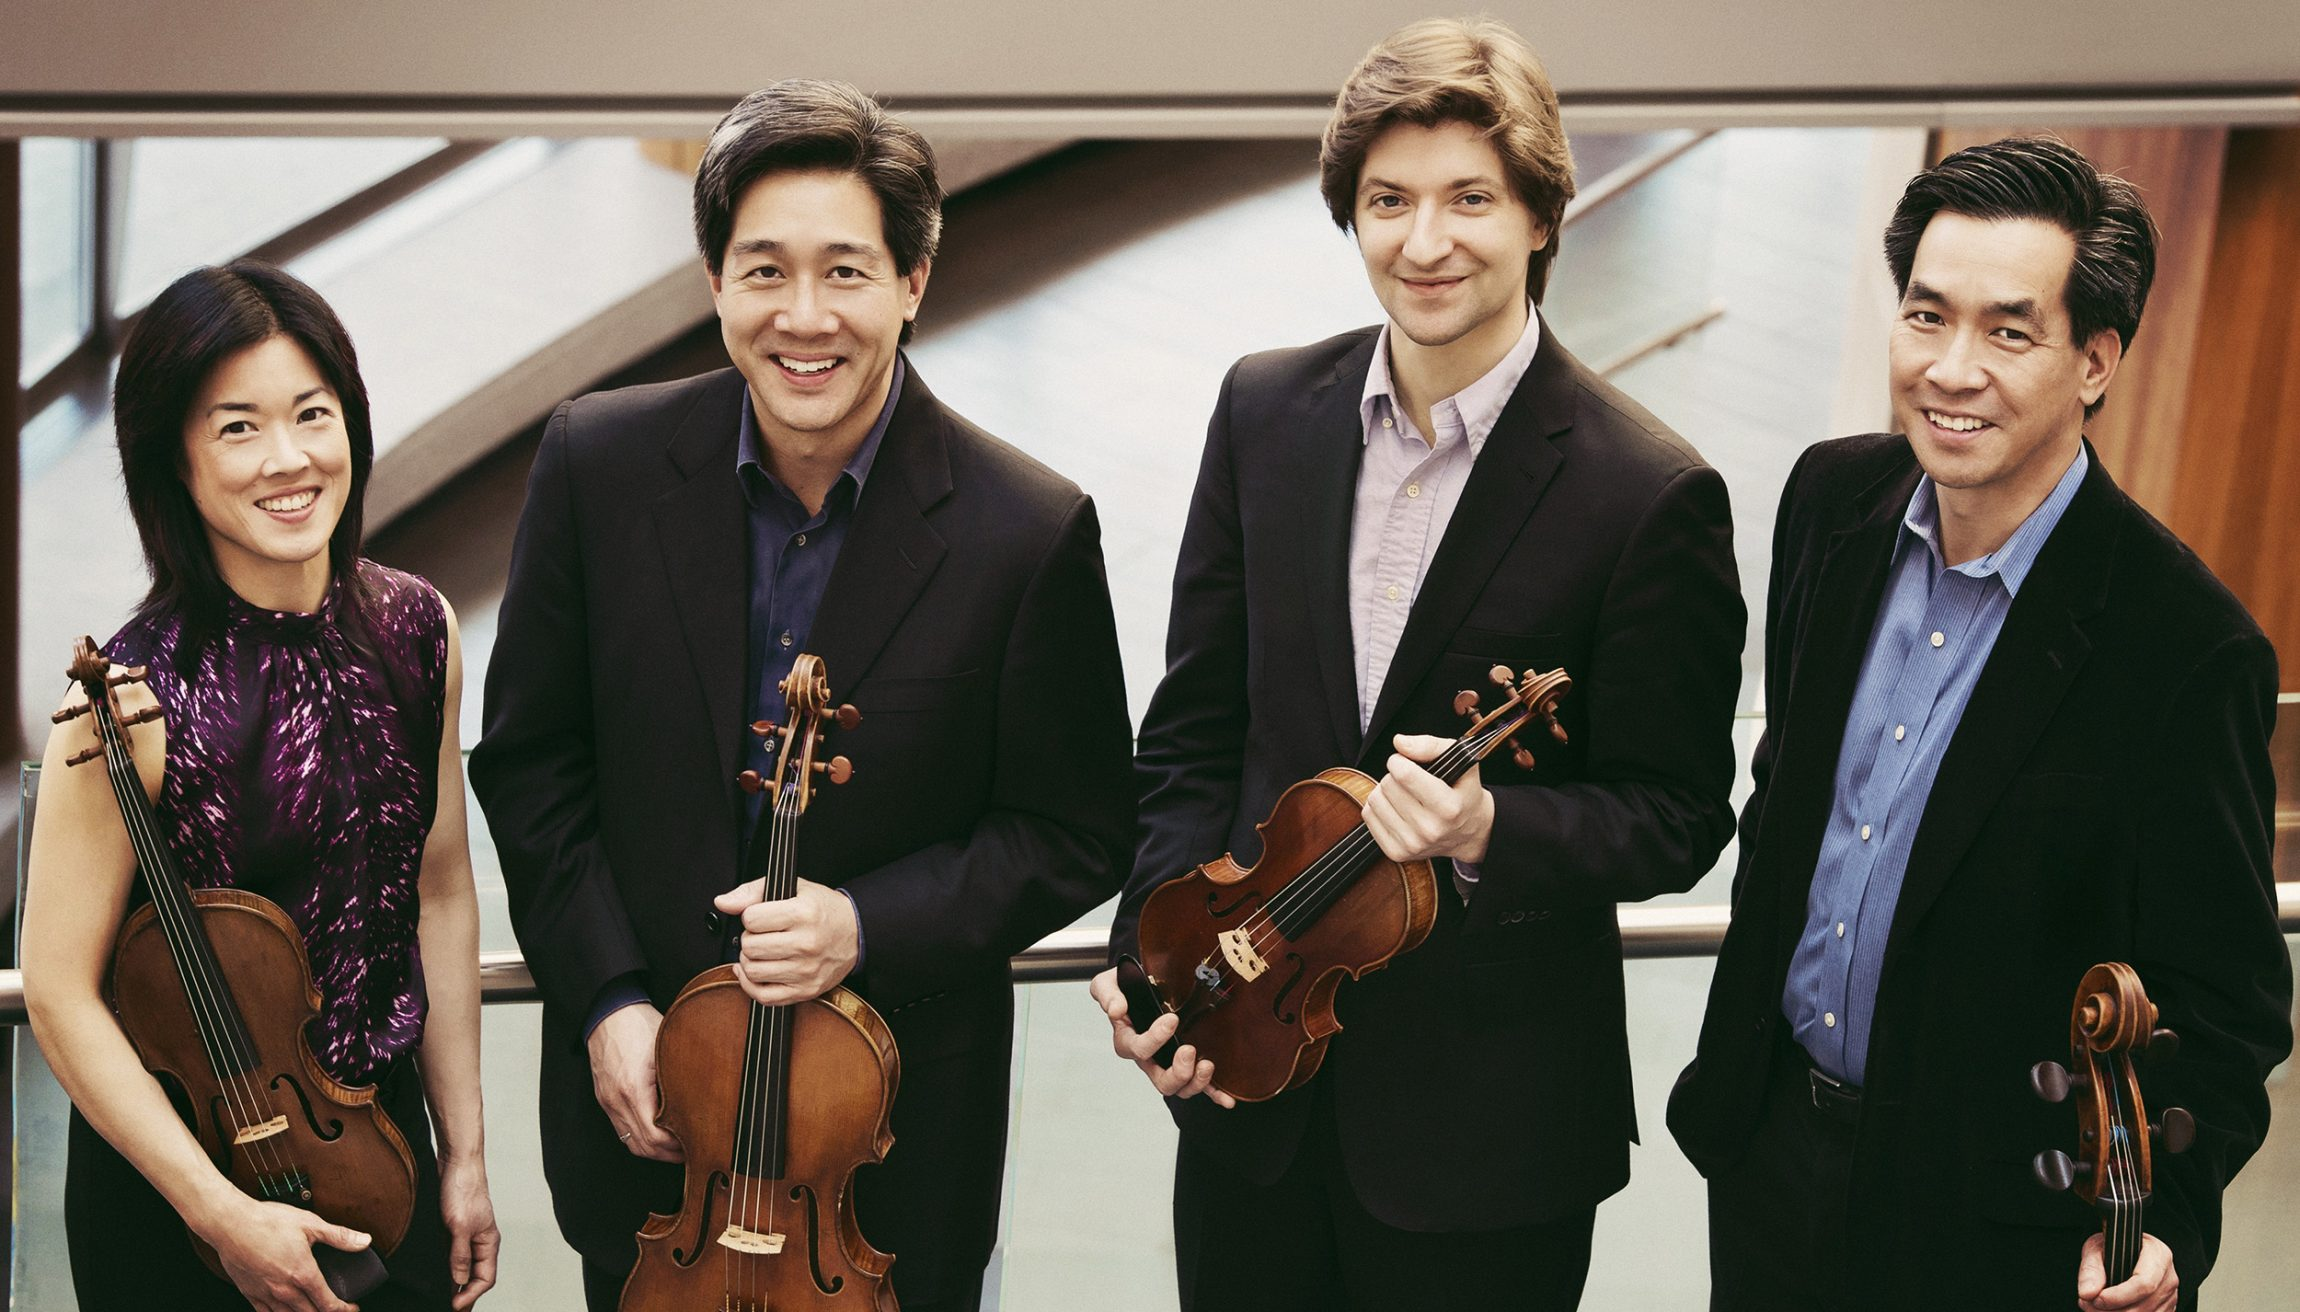 The Ying Quartet performing at Bowdoin Music Festival